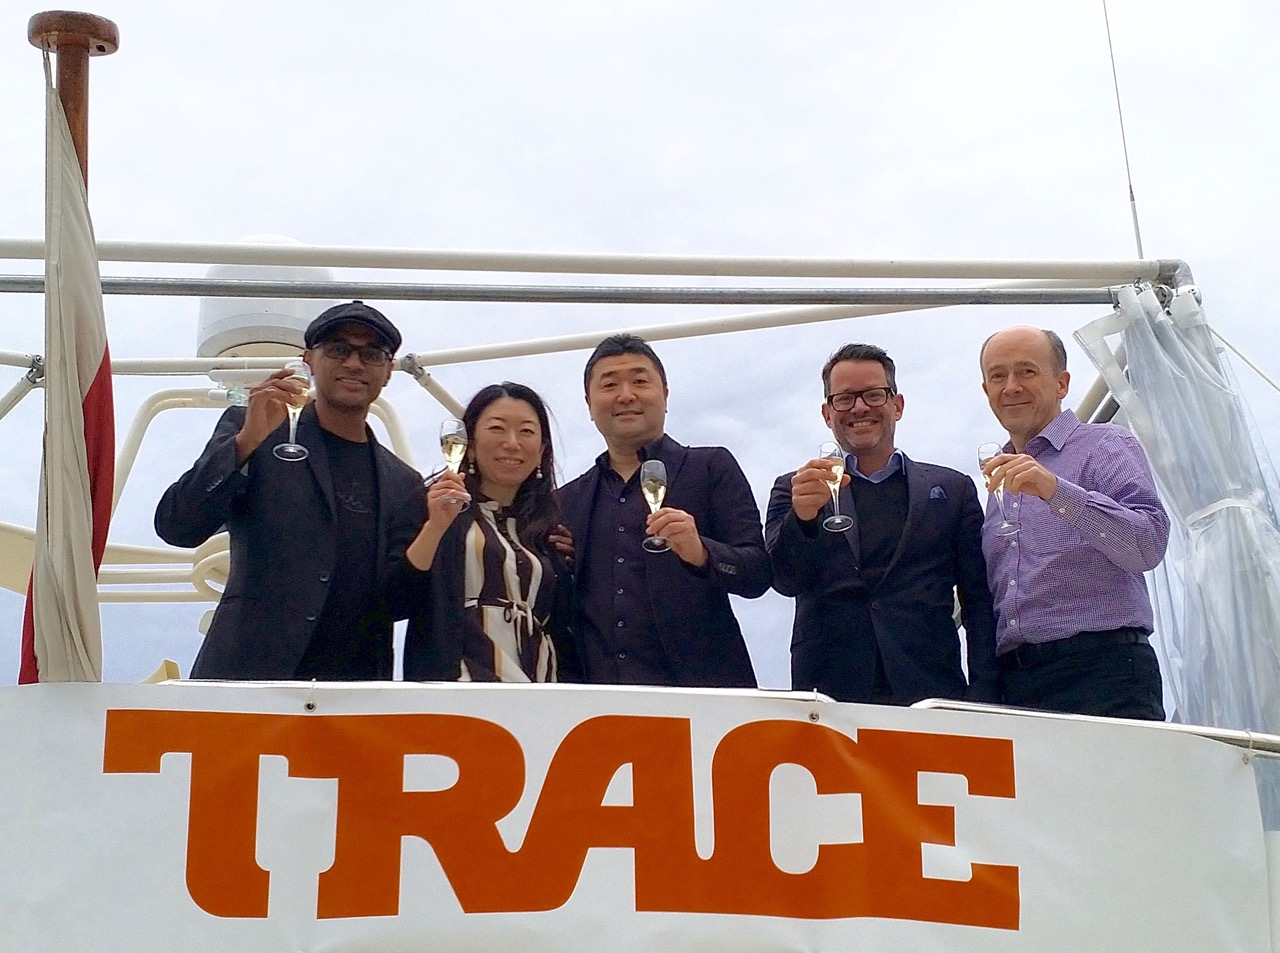 Picture-TRACE-Hulu-Japan-Launch-9th-April-2018-1.jpeg